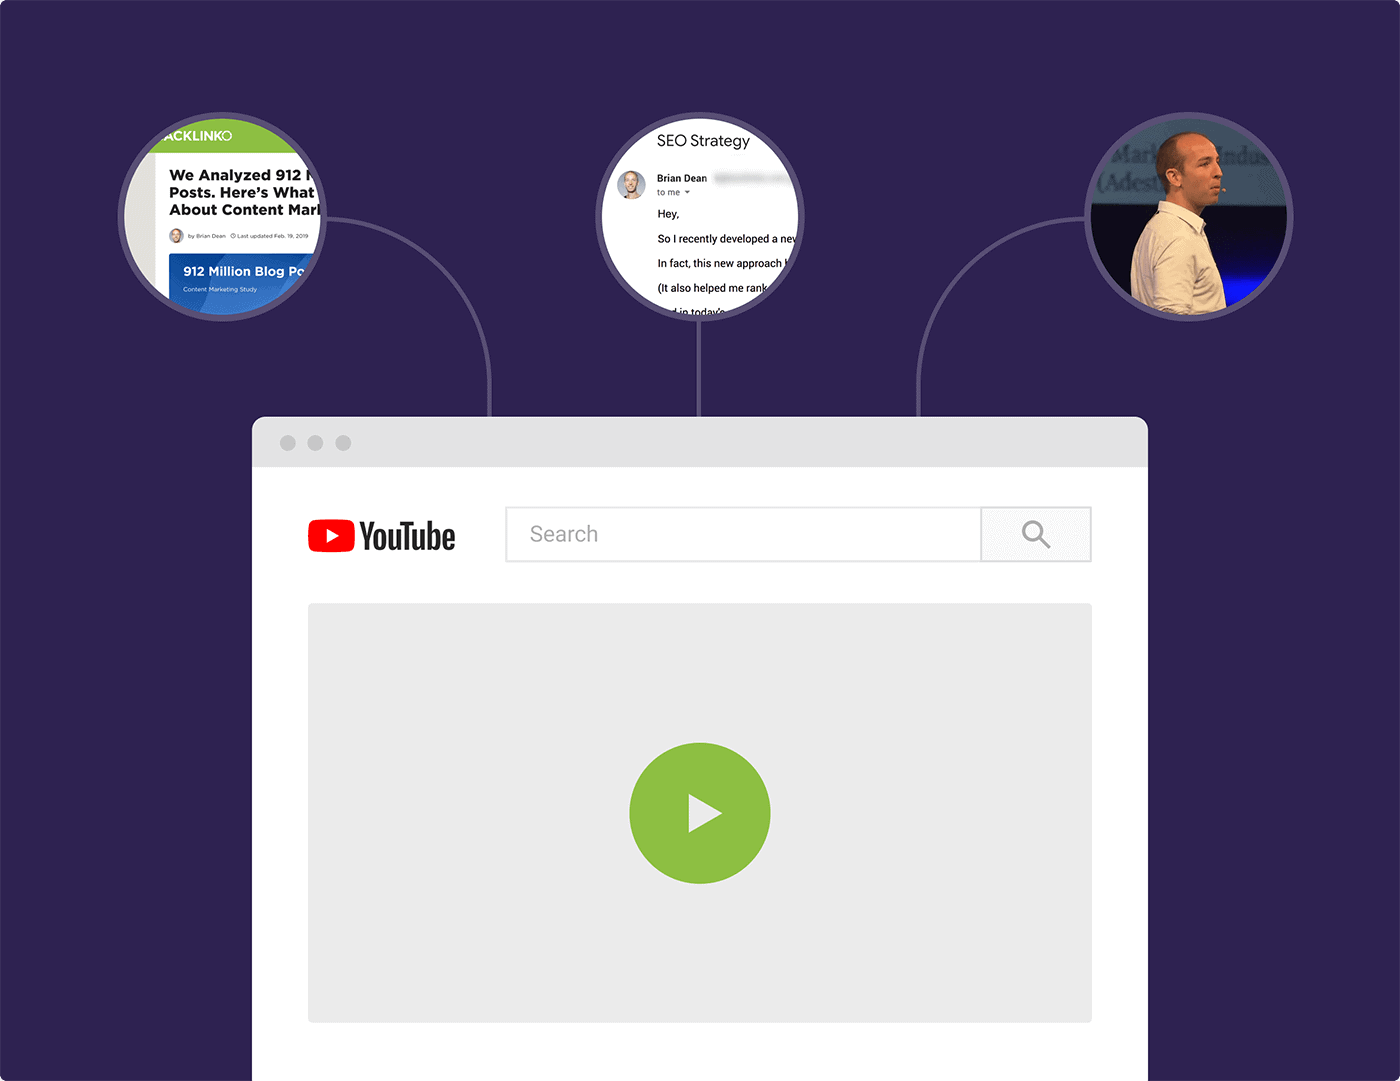 YouTube video content based on existing content